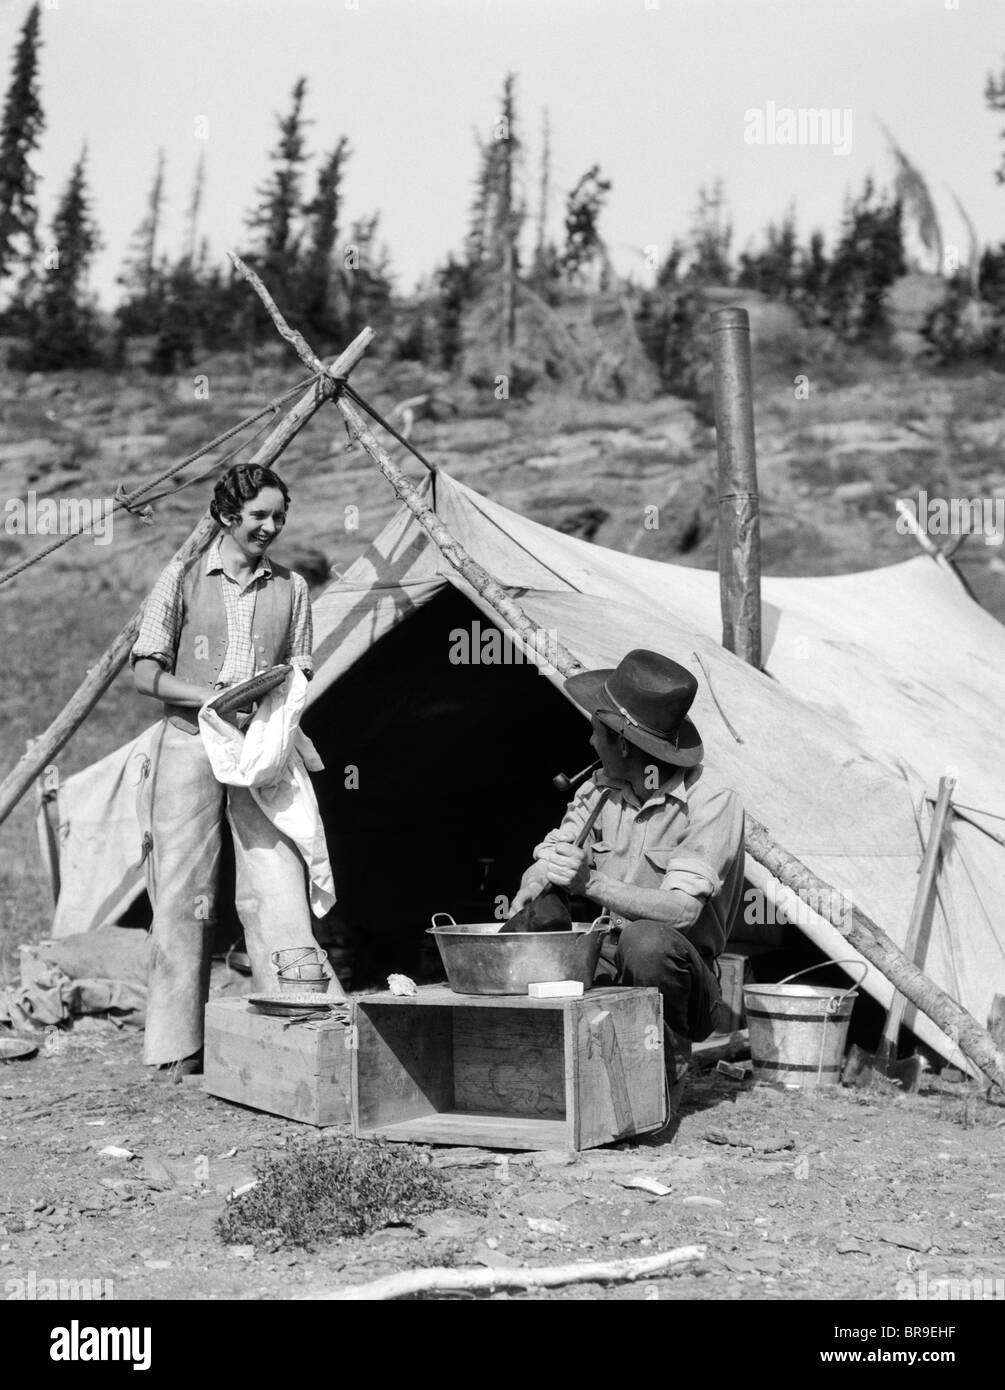 1930s SMILING TALKING COUPLE WORKING BY RUSTIC WESTERN CAMPSITE TENT MAN IN COWBOY HAT SMOKING PIPE WASHING SKILLET - Stock Image